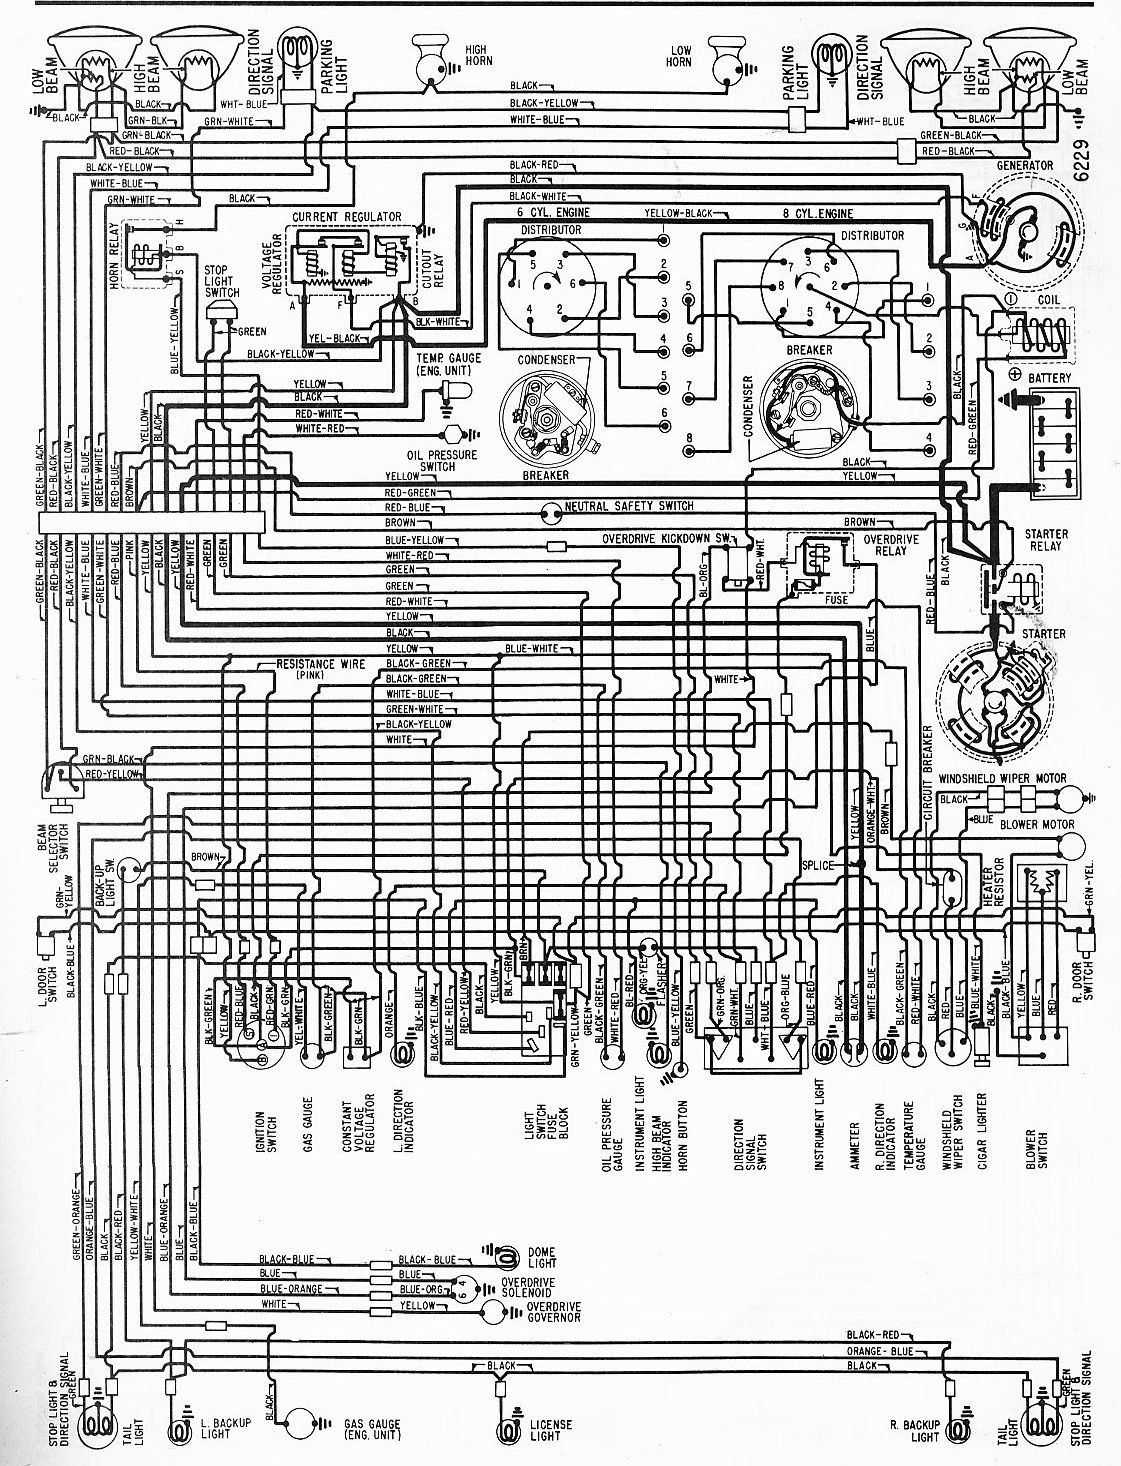 DIAGRAM] Vintage Truck Fuse Block Wiring Diagram FULL Version HD Quality Wiring  Diagram - STRUCTUREDSETTLEME.NIBERMA.FRstructuredsettleme.niberma.fr